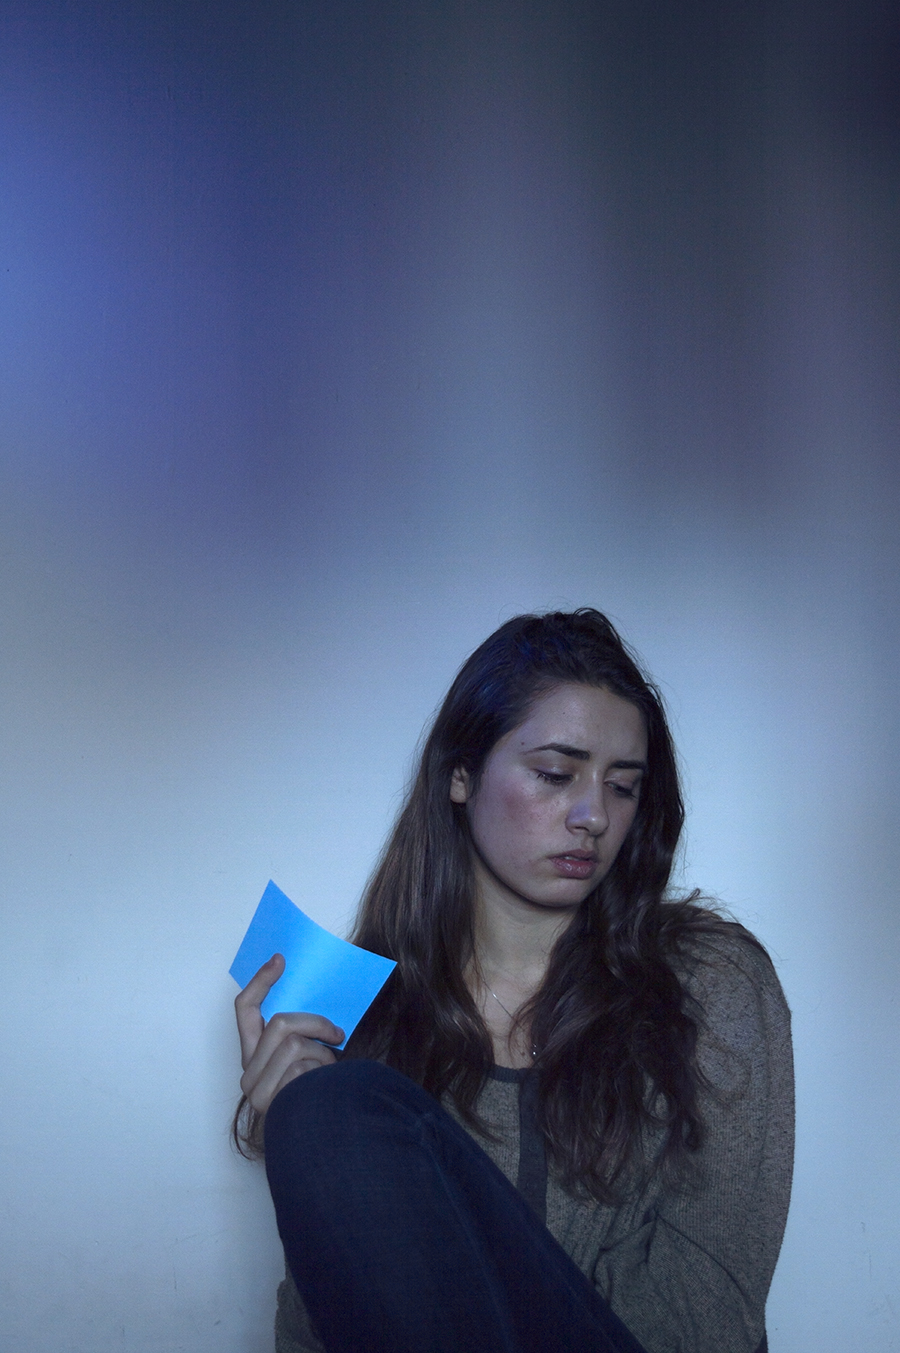 Robin_Sanders_photography_Day2_sitting_holding_card_sad_note_love_lost